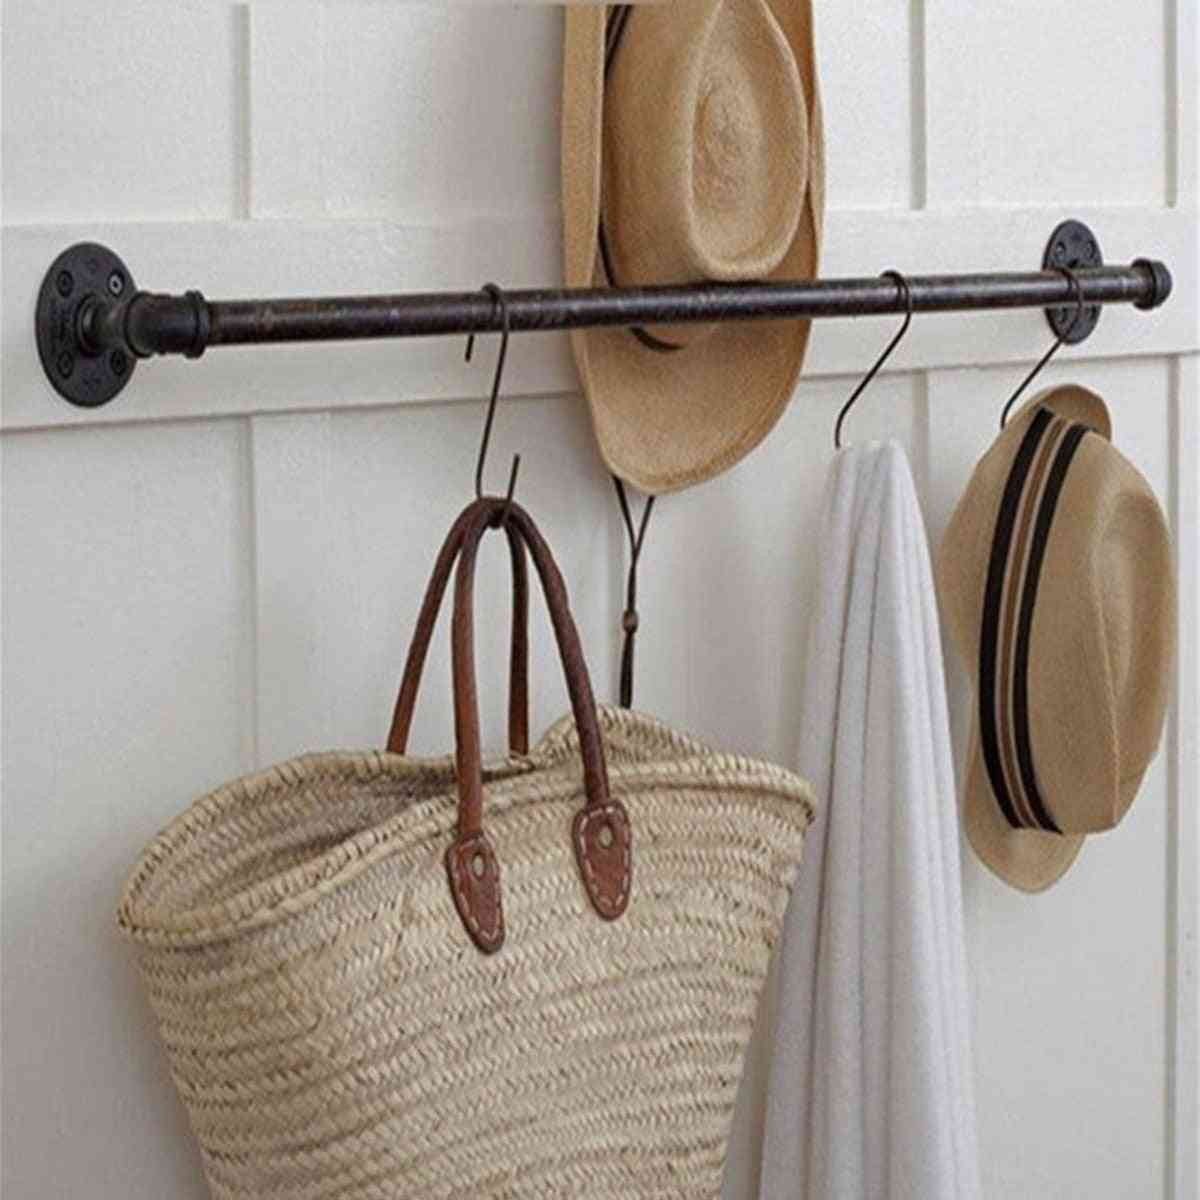 Retro Style, Wall Mounted-towel Rack With Screws